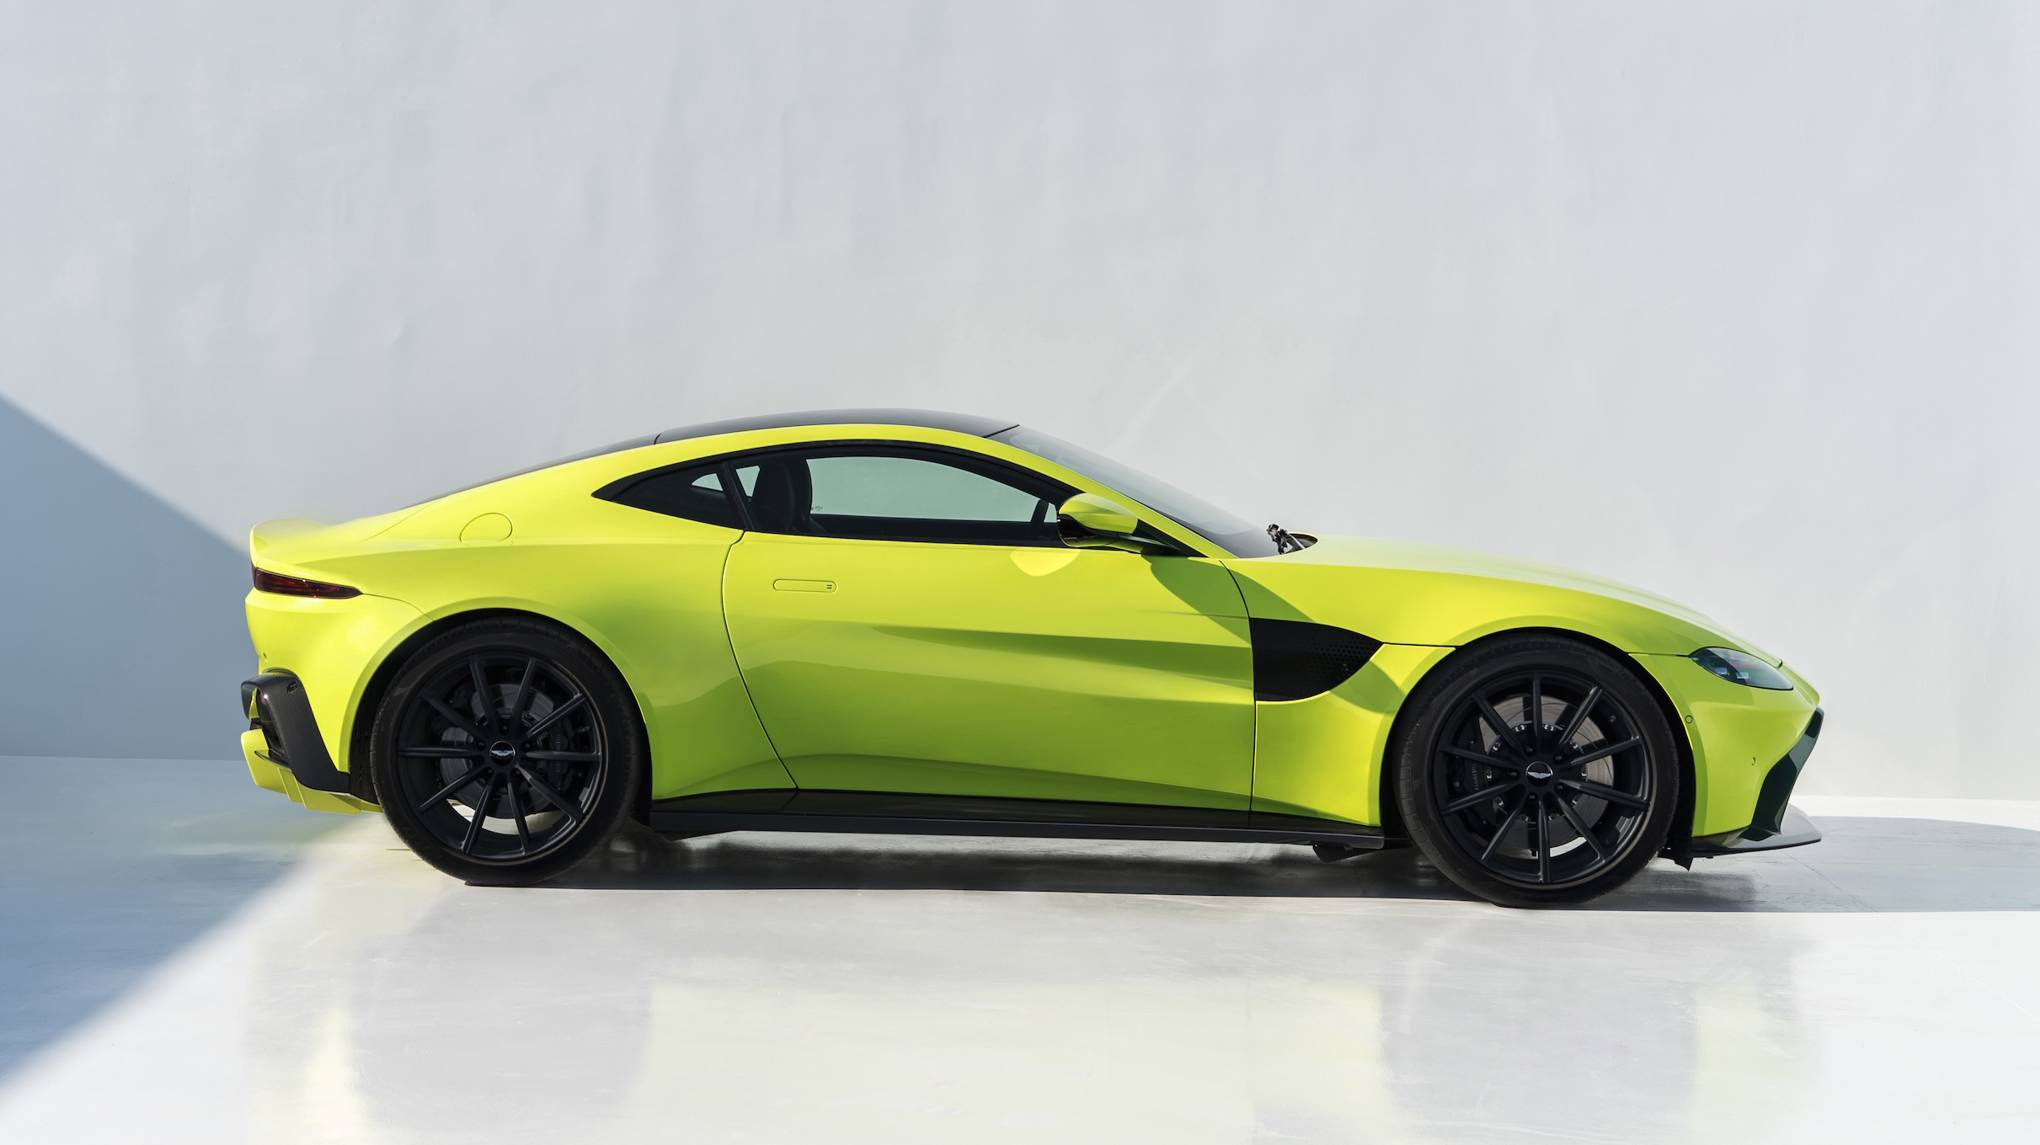 Aston Martin Vantage entry level luxury with the looks